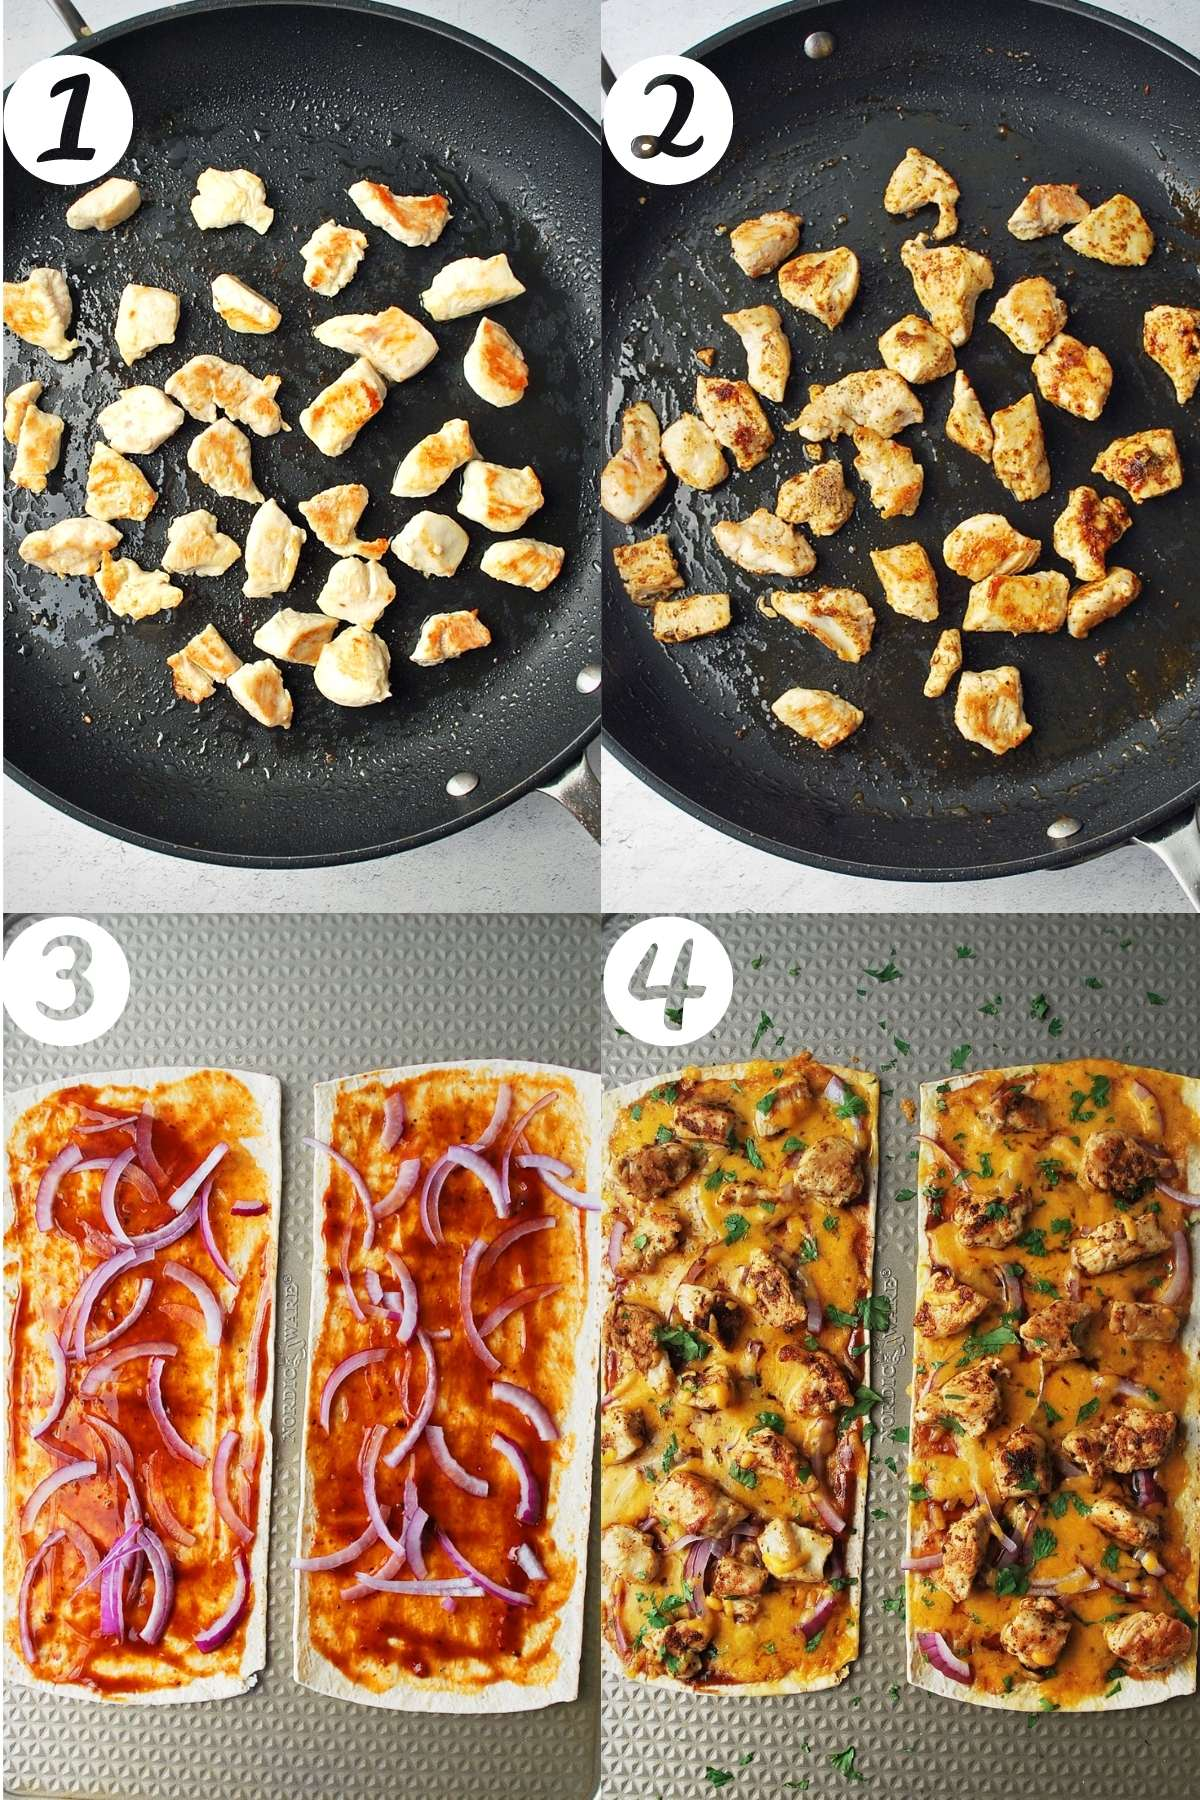 steps for making BBQ chicken flatbread pizzas: saute chicken, season chicken, assemble flatbreads, finished and baked